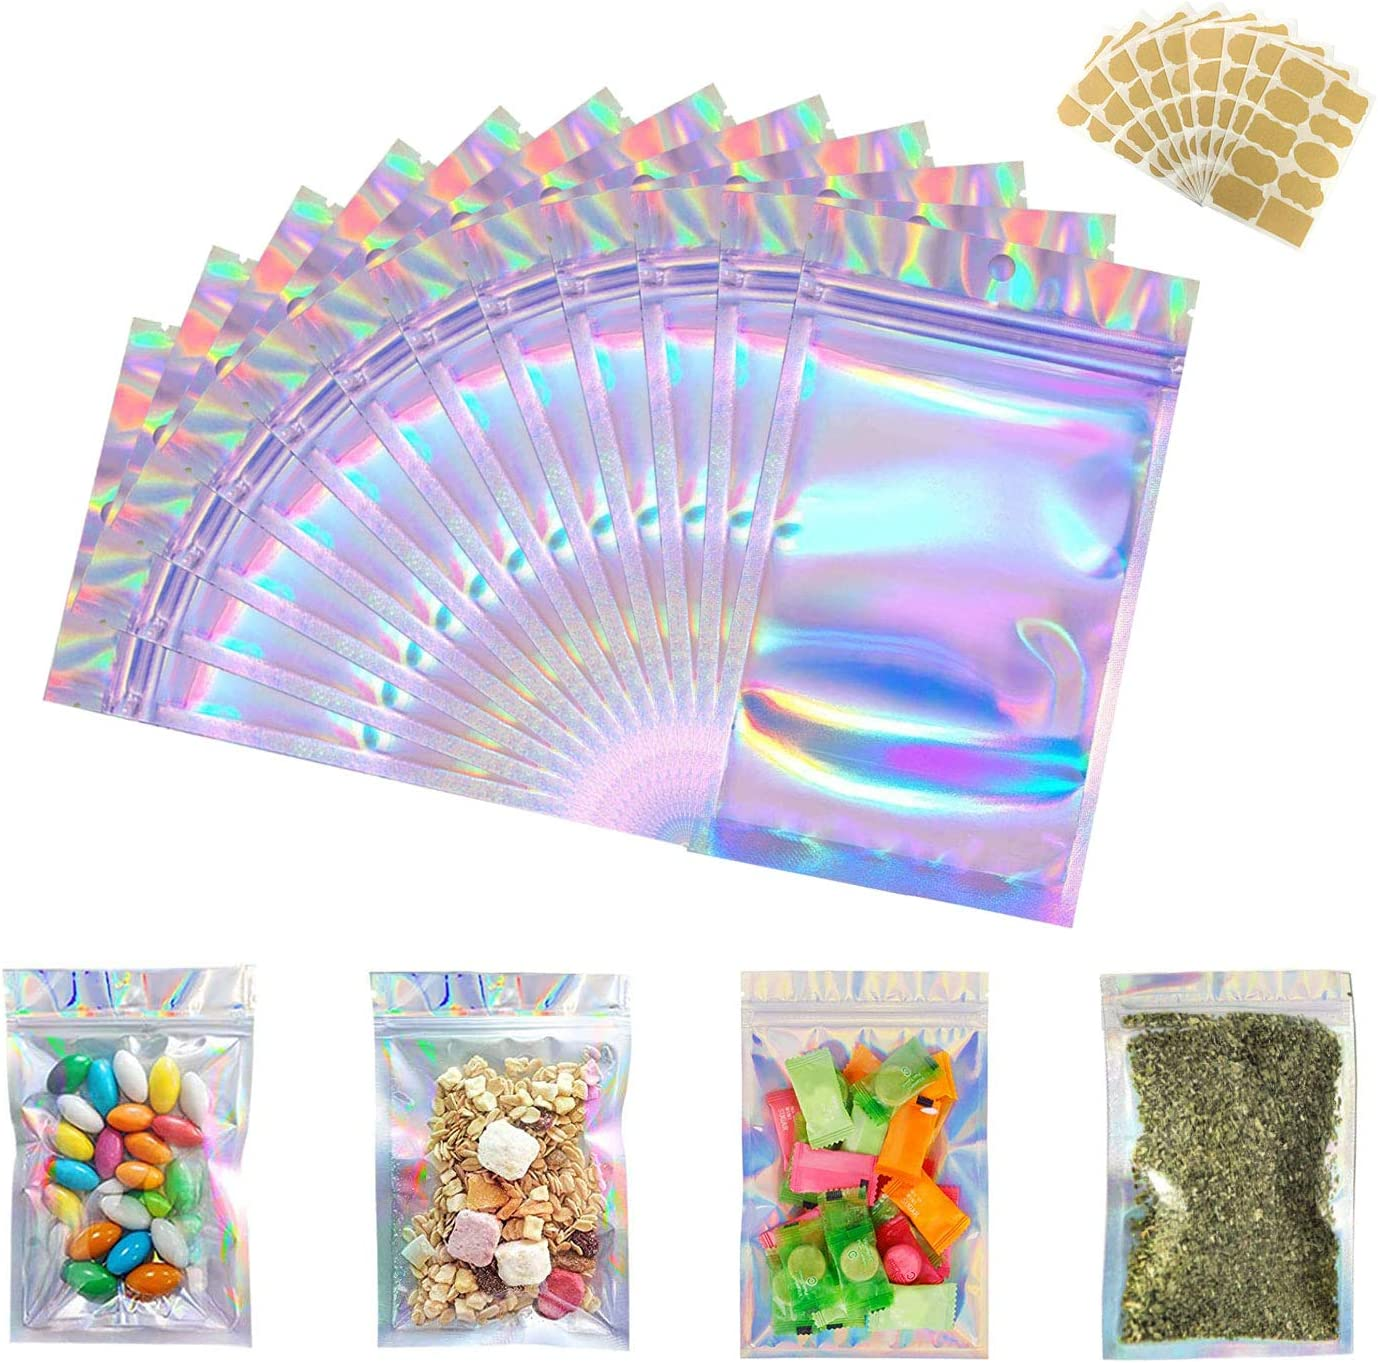 100 Pieces Resealable Smell Proof Bags - 5 x 7 Inch with Recordable Sticker Flat Ziplock Bag for Party Favor Food Storage (Holographic Color)